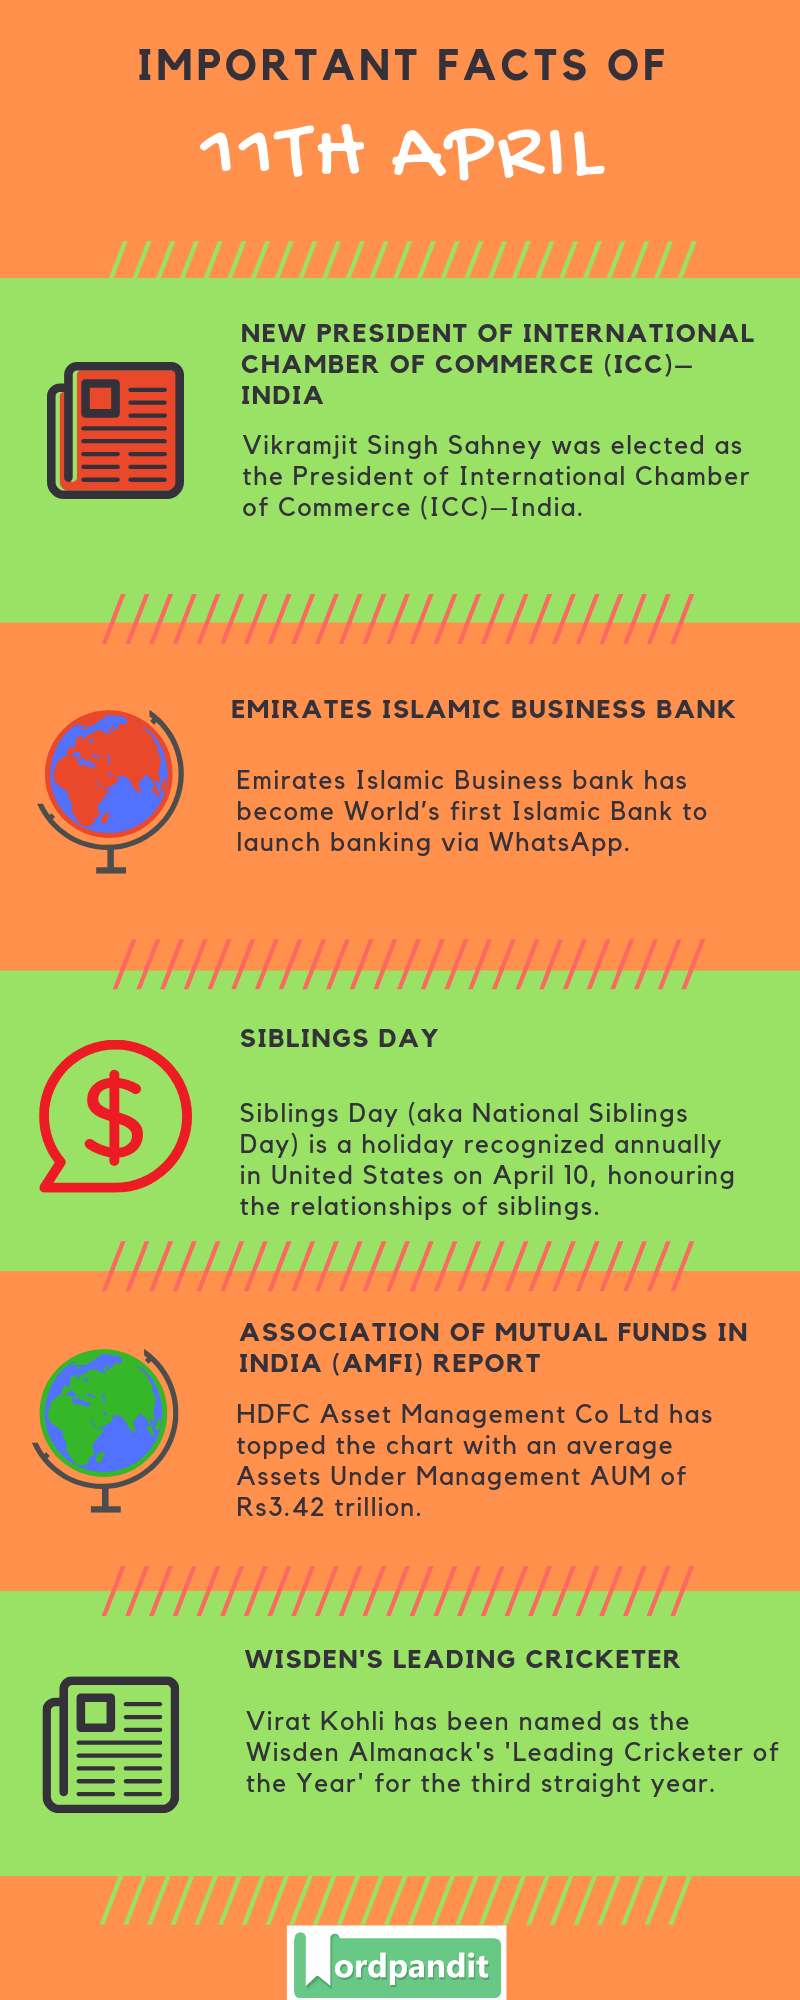 Daily Current Affairs 11 April 2019 Current Affairs Quiz 11 April 2019 Current Affairs Infographic